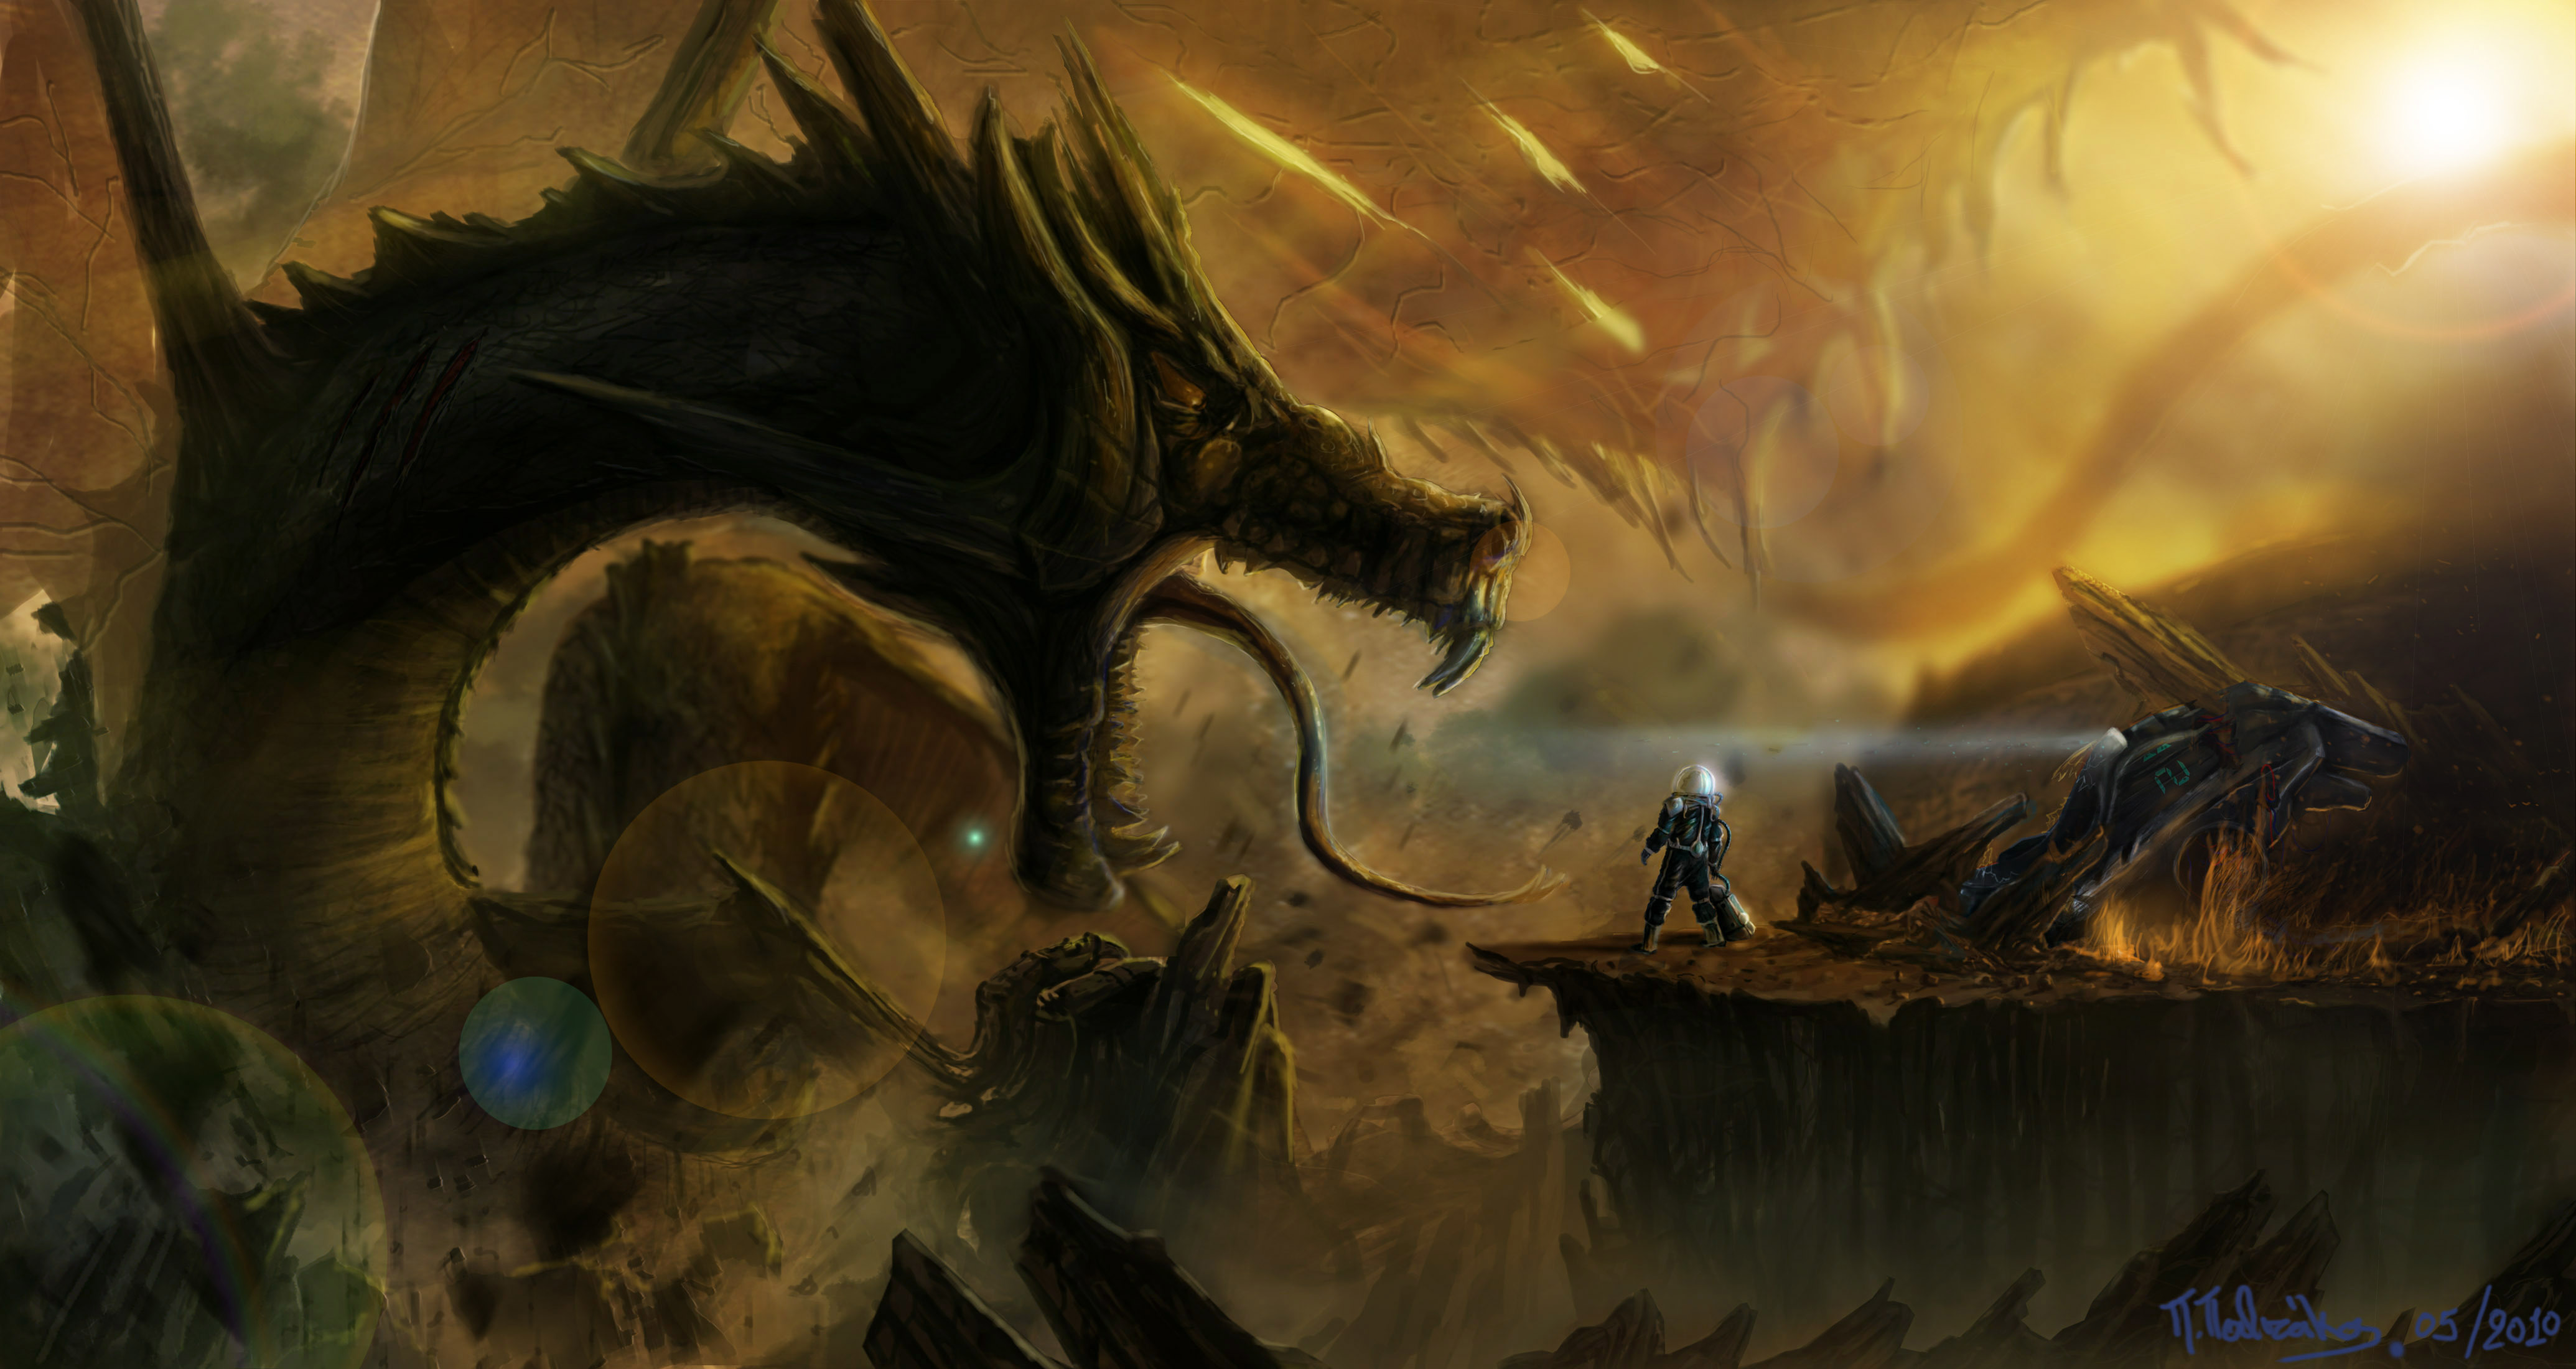 World Wallpaper Sci Fi Wallpaper: Dragon Monster Fantastic World Sci-fi Fantasy Wallpaper